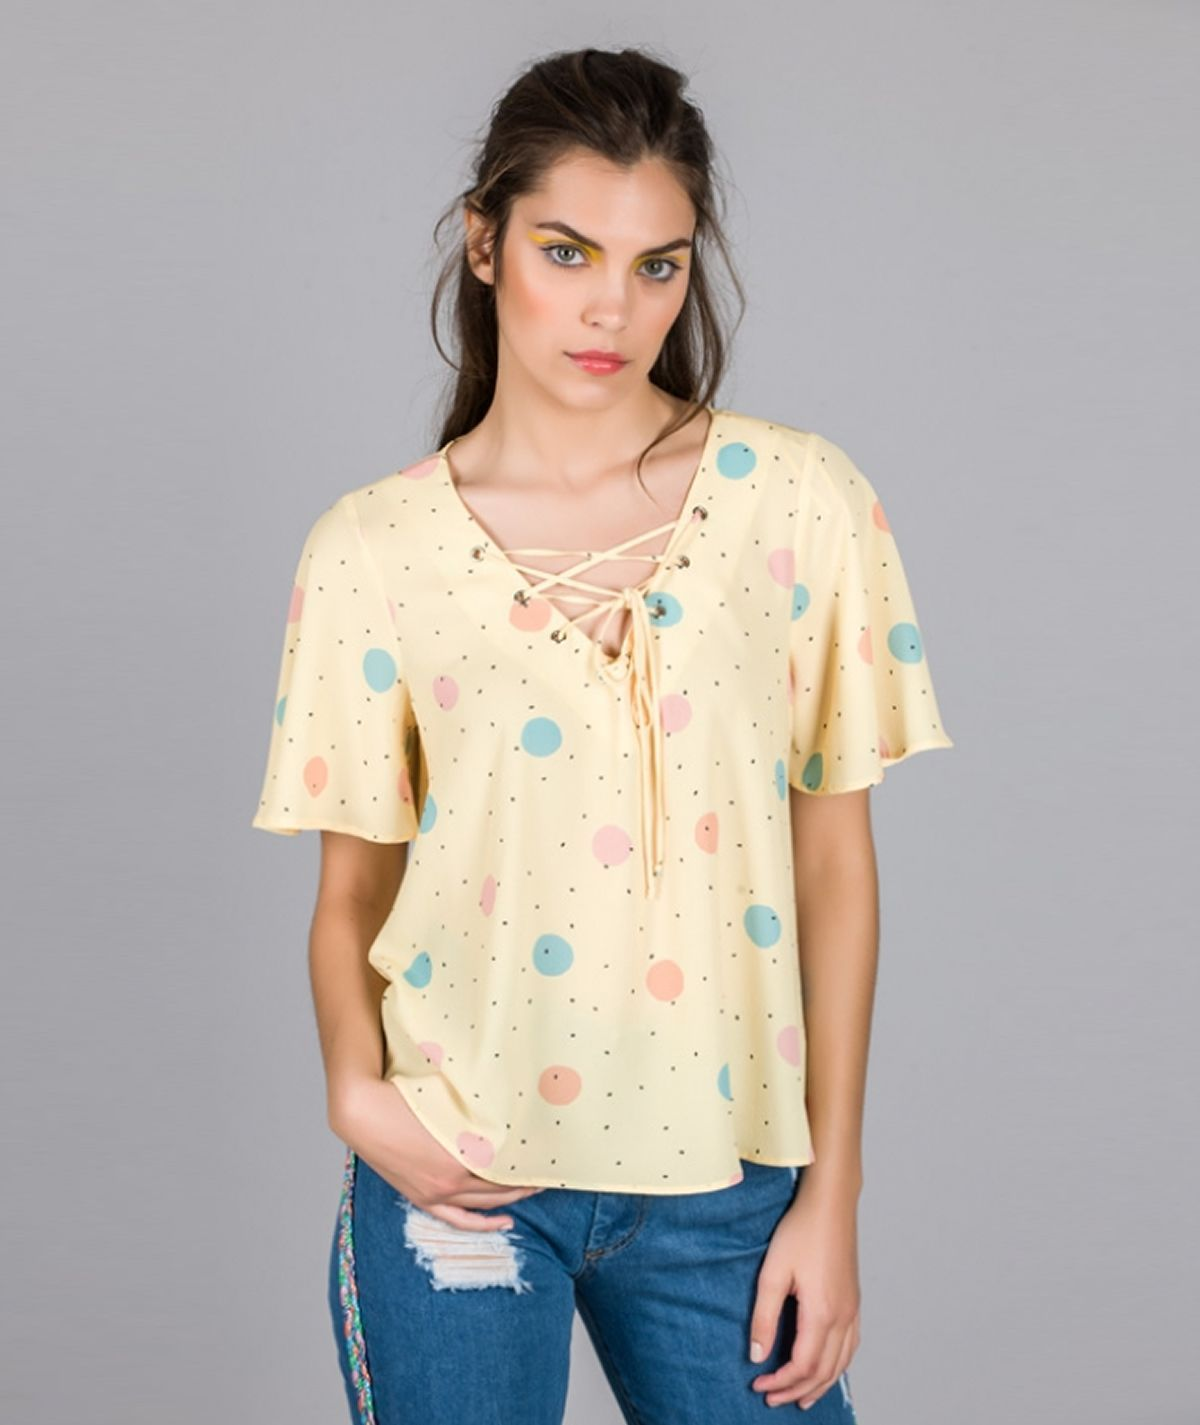 [CHIESSY] Blusa estampado dots